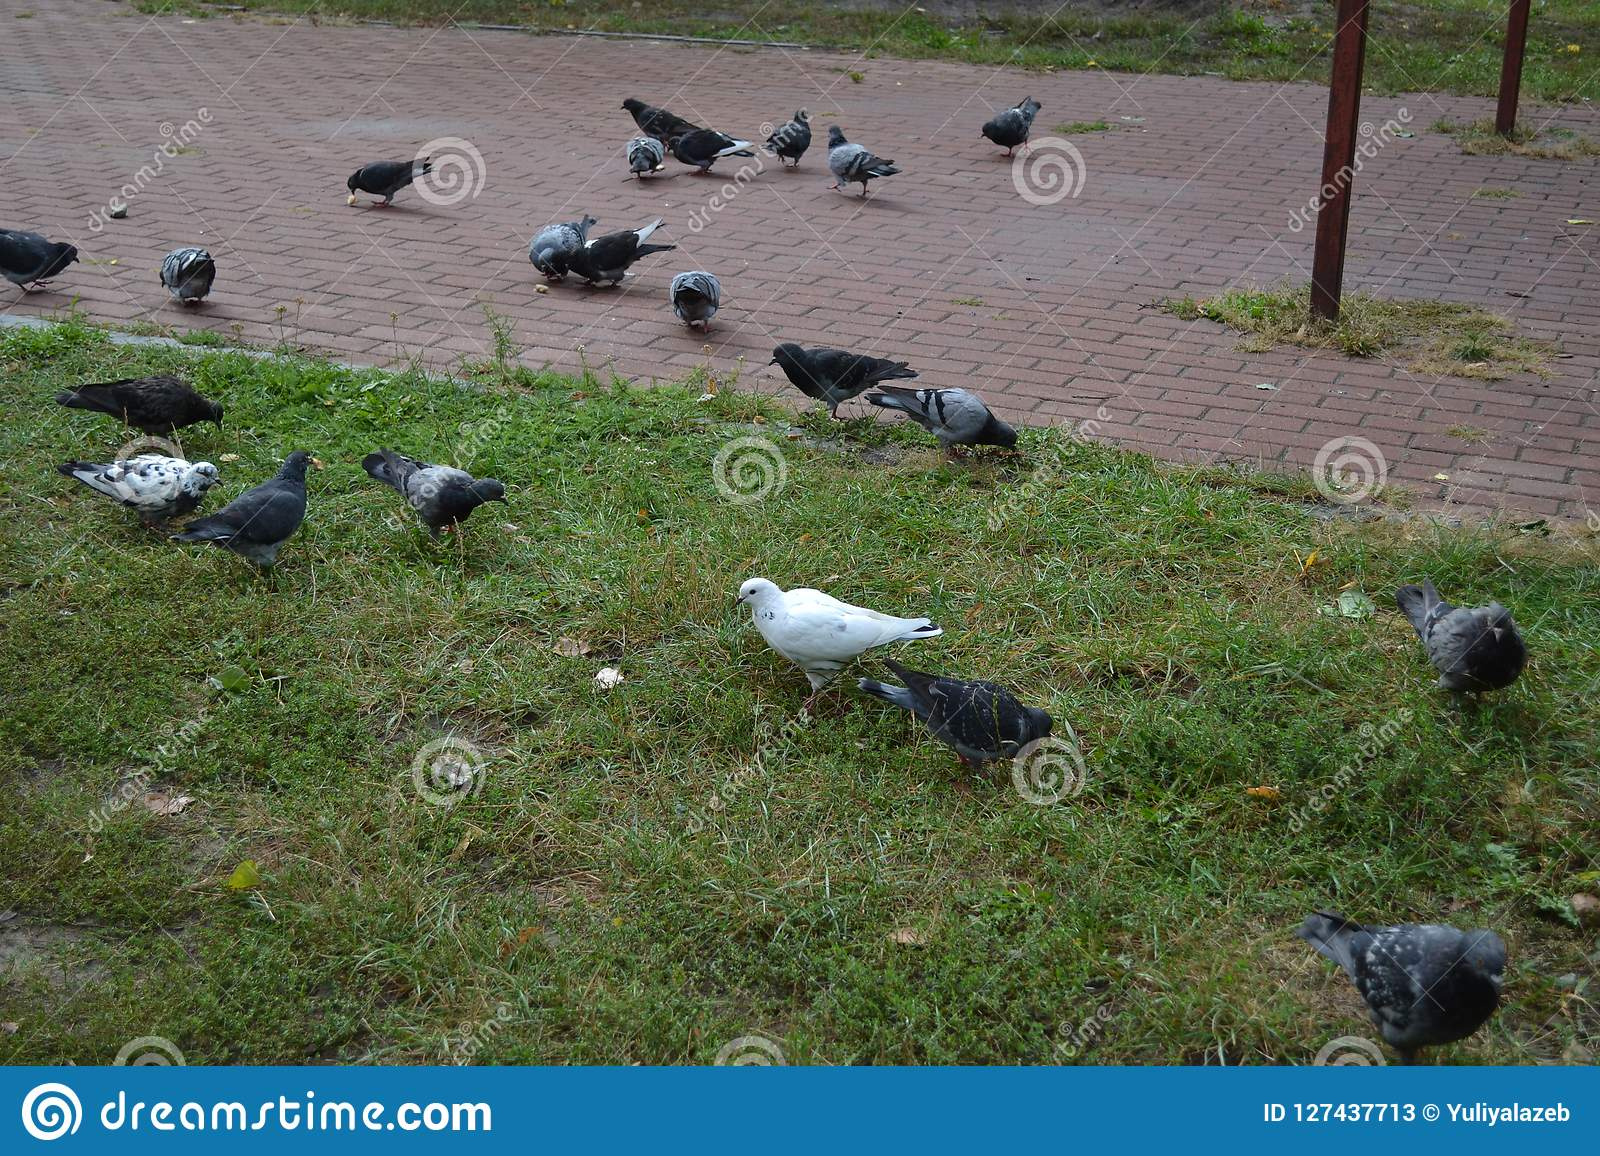 Pigeons on the playground, autumn day